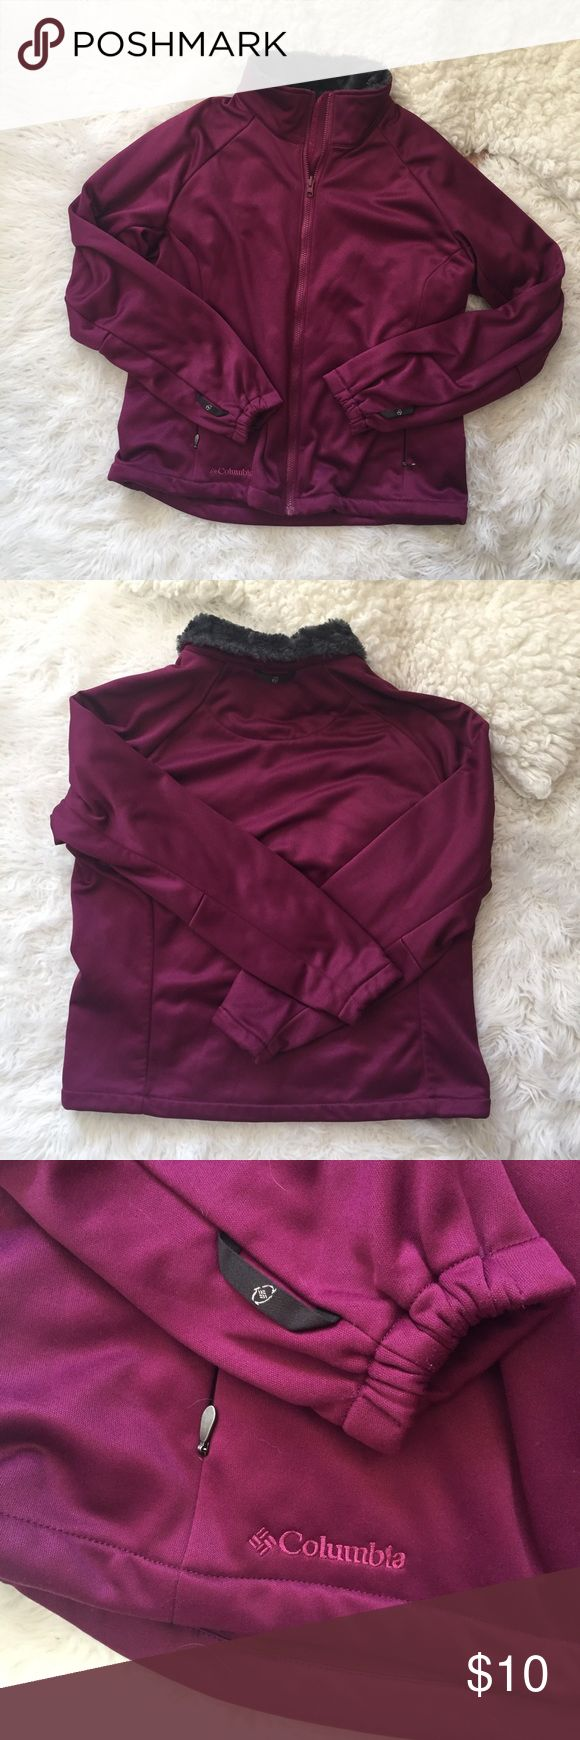 "Columbia Interchange Faux fur purple jacket Women's Columbia jacket with faux fur inside collar. Measurements: bust - 44"", length (armpit to hem) - 13"". 💫 Smoke free home. Offers are welcome! No trades, please. Bundle multiple items for a discount and only pay for shipping once! Columbia Jackets & Coats"